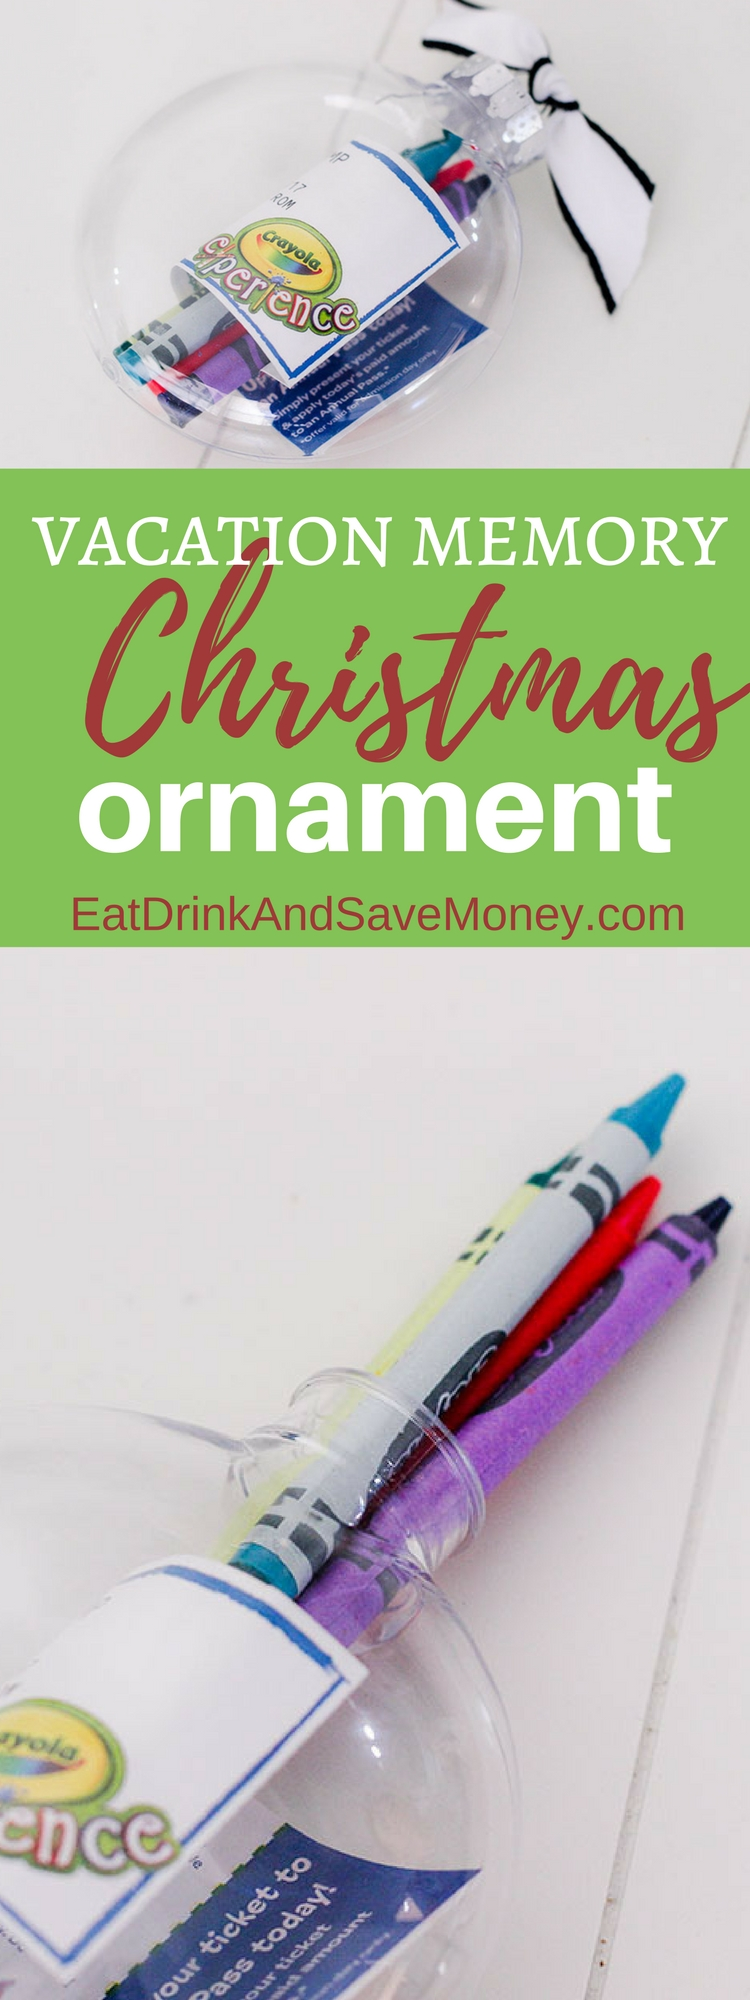 DIY Christmas ornament_ preserve vacation memories by making a travel ornament. Use clear ornaments and fill them with your favorite keepsakes from vacation.